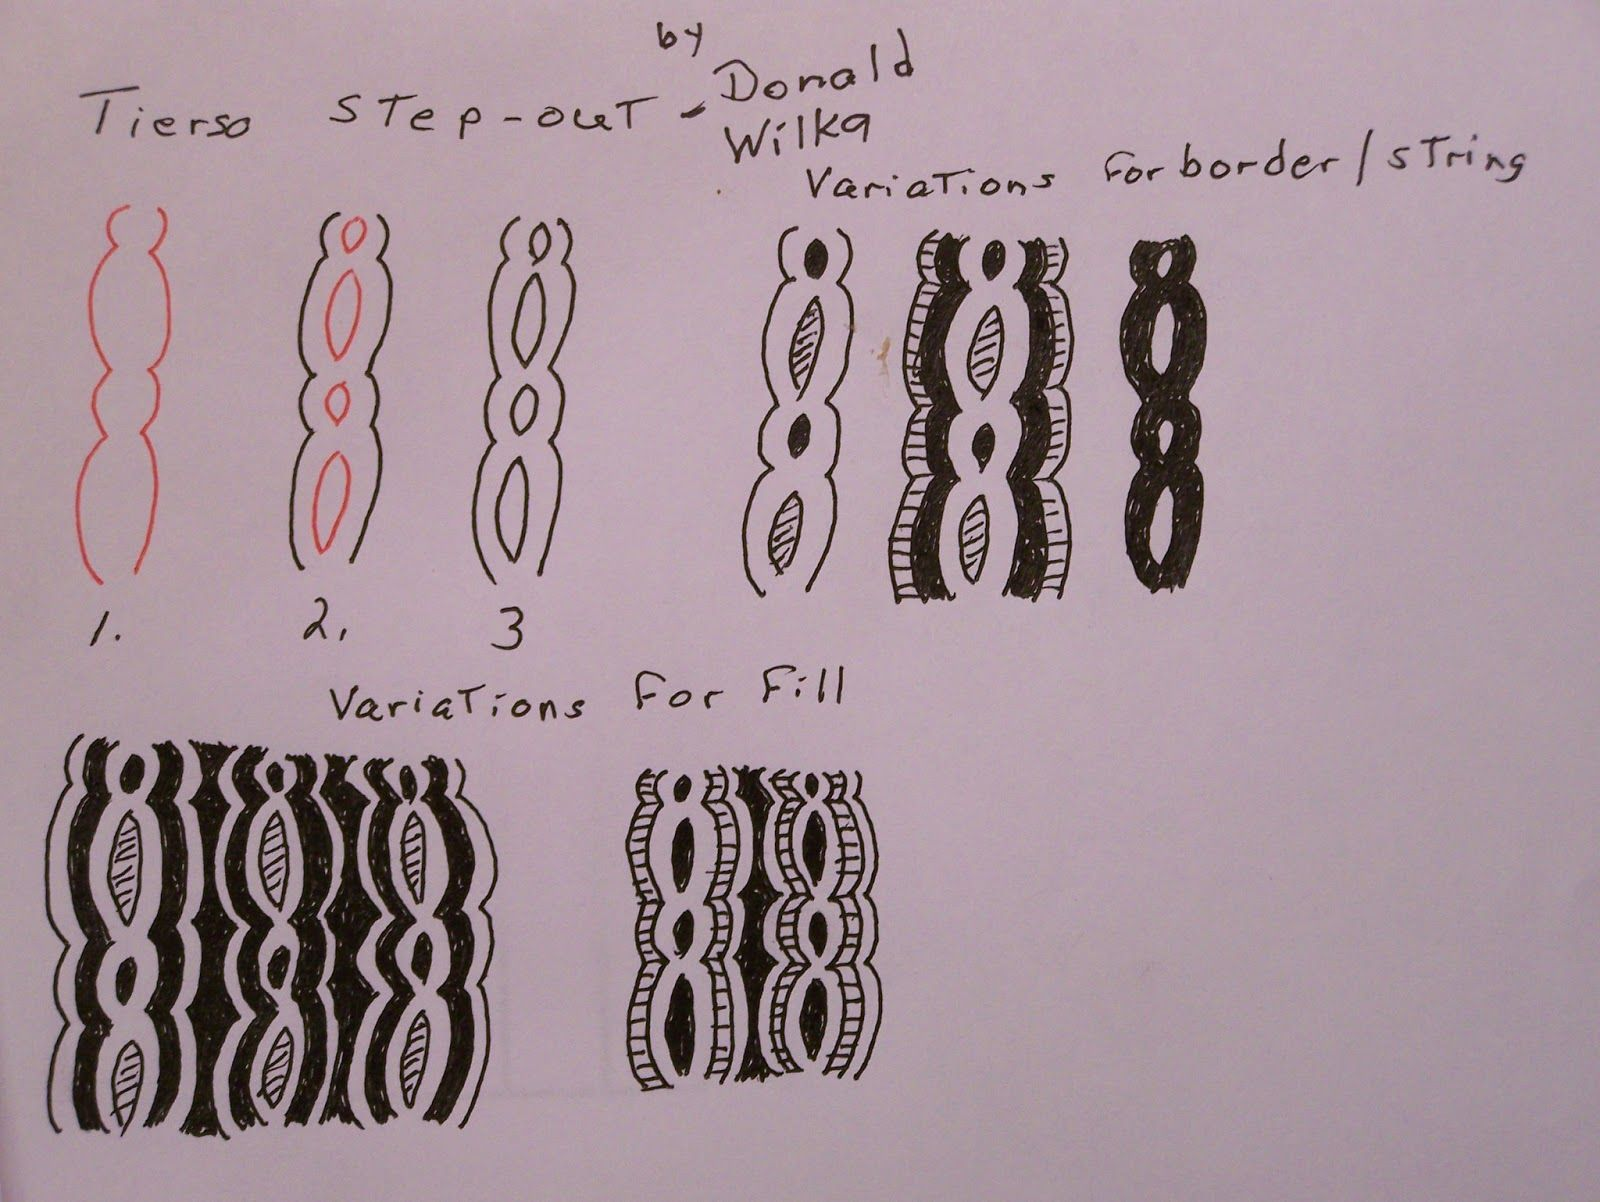 Tangles and More: Tangleation, New Tangle, or just a pattern : Tierso